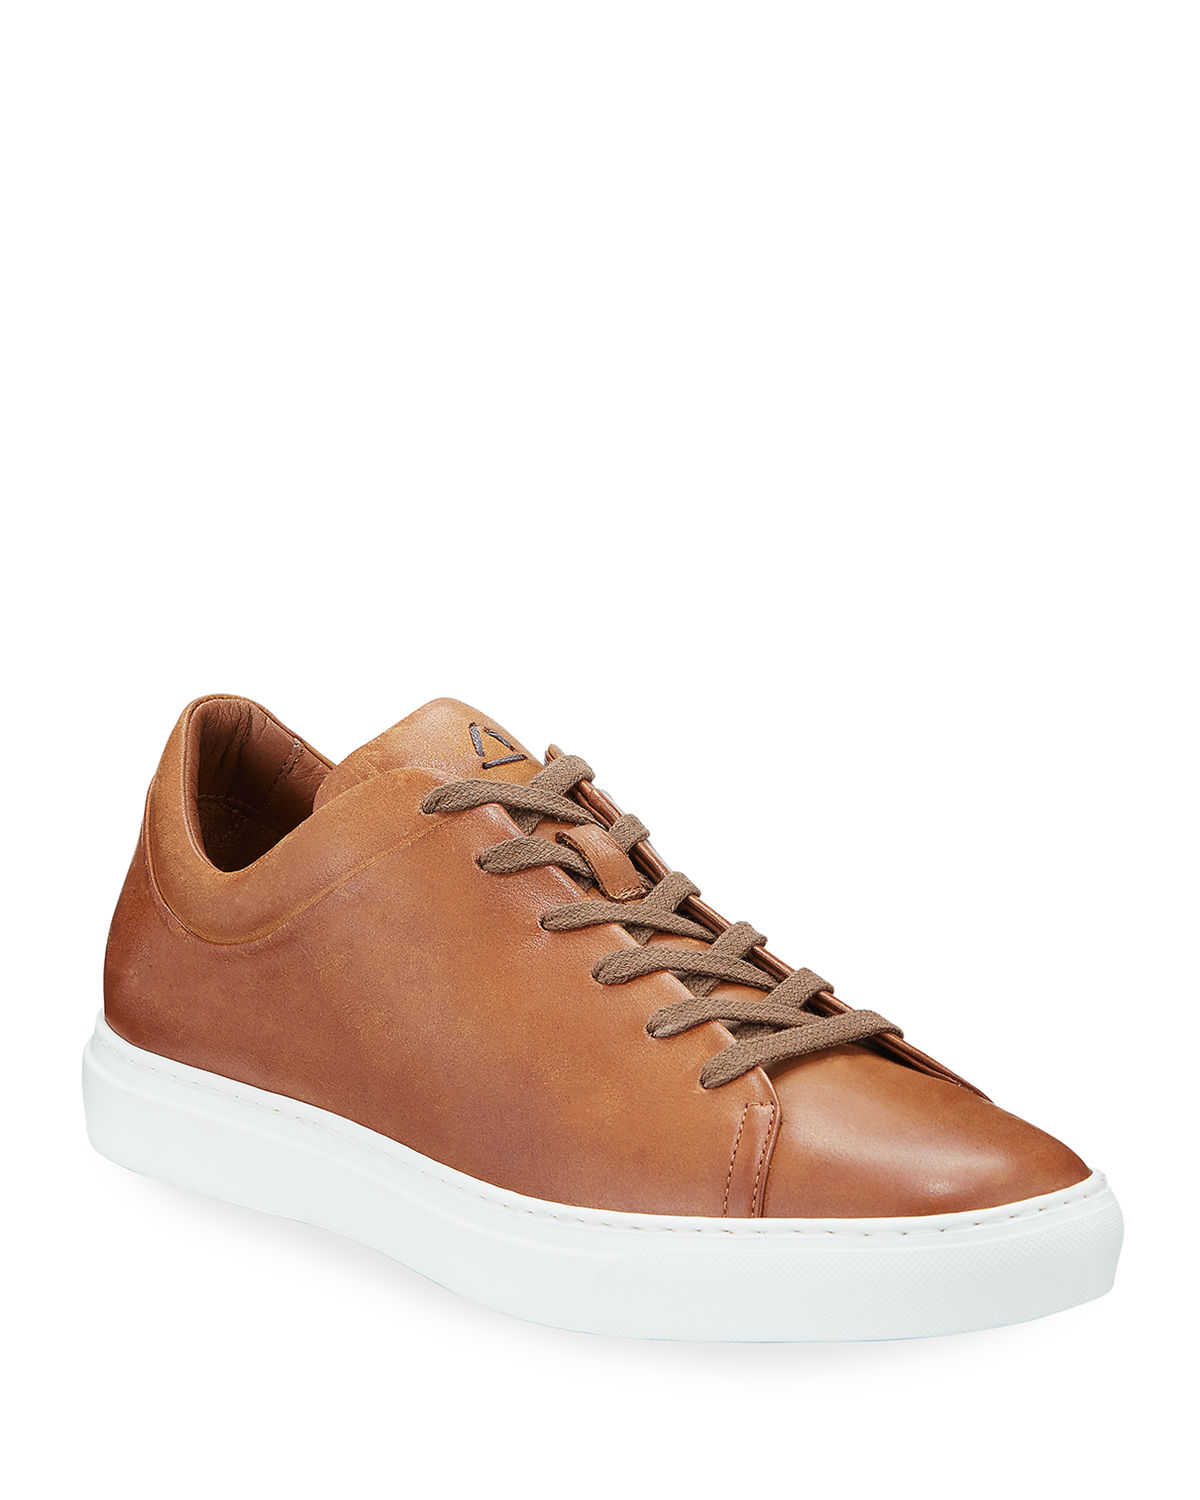 Aquatalia Sneakers MEN'S ALARIC LEATHER LOW-TOP SNEAKERS